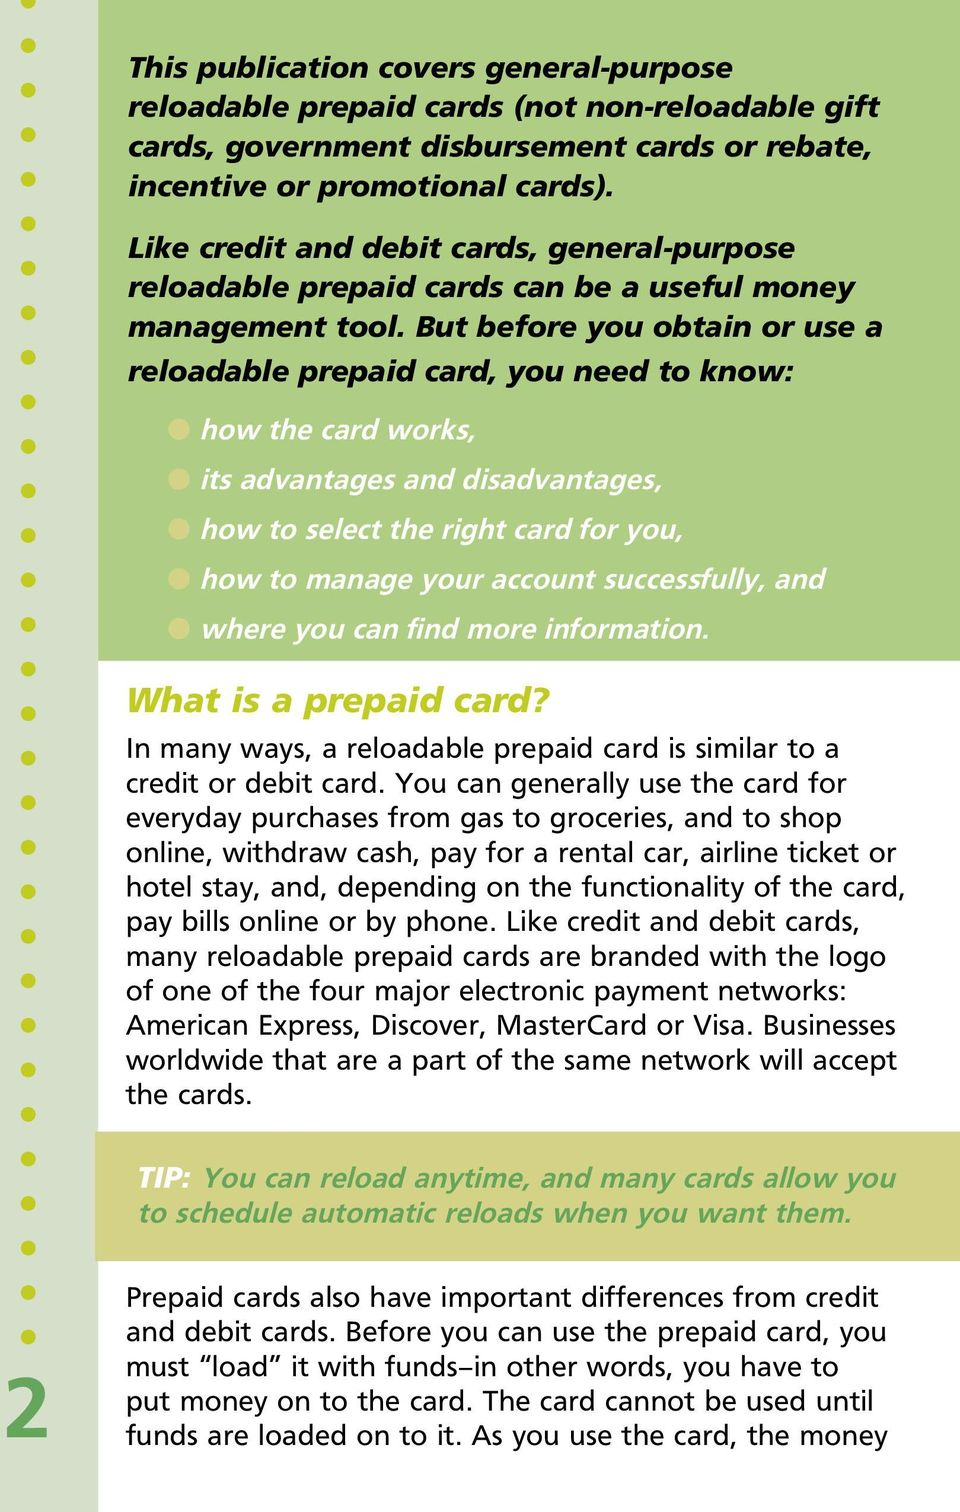 But before you obtain or use a reloadable prepaid card, you need to know: l how the card works, l its advantages and disadvantages, l how to select the right card for you, l how to manage your